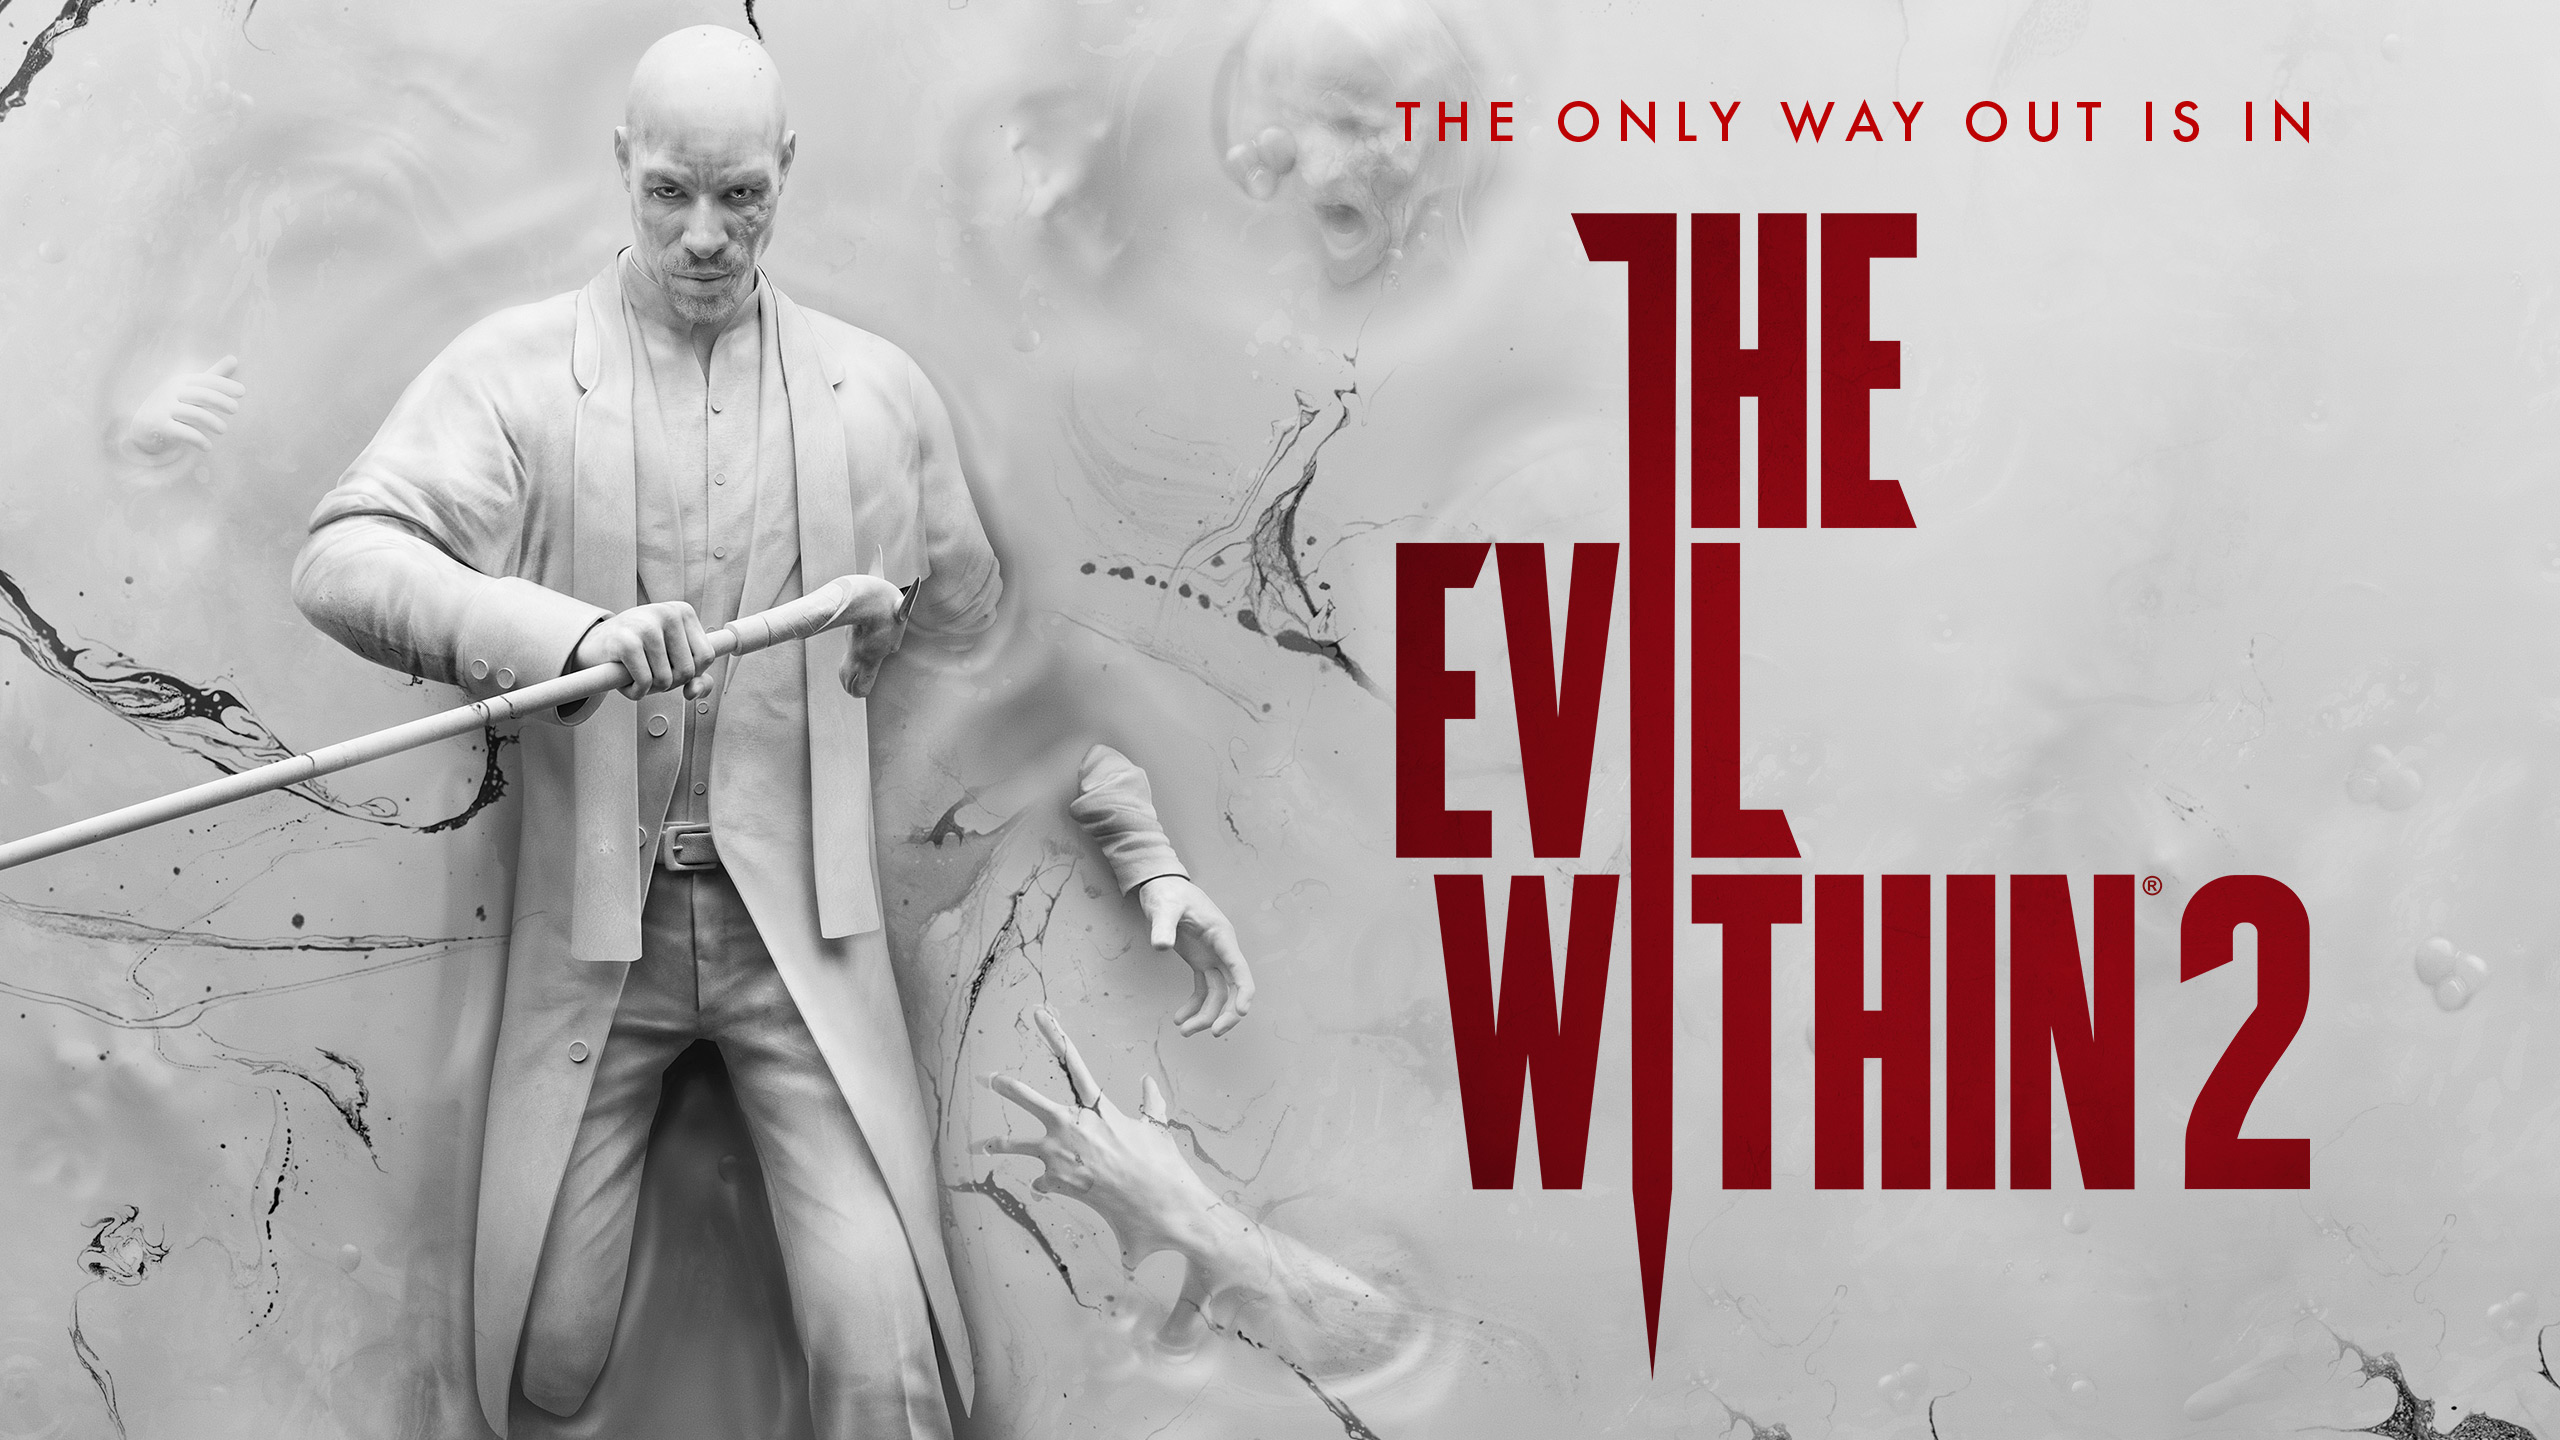 The Evil Within 2 Theodore Wallace9527917710 - The Evil Within 2 Theodore Wallace - Within, Wallace, Theodore, The, Evil